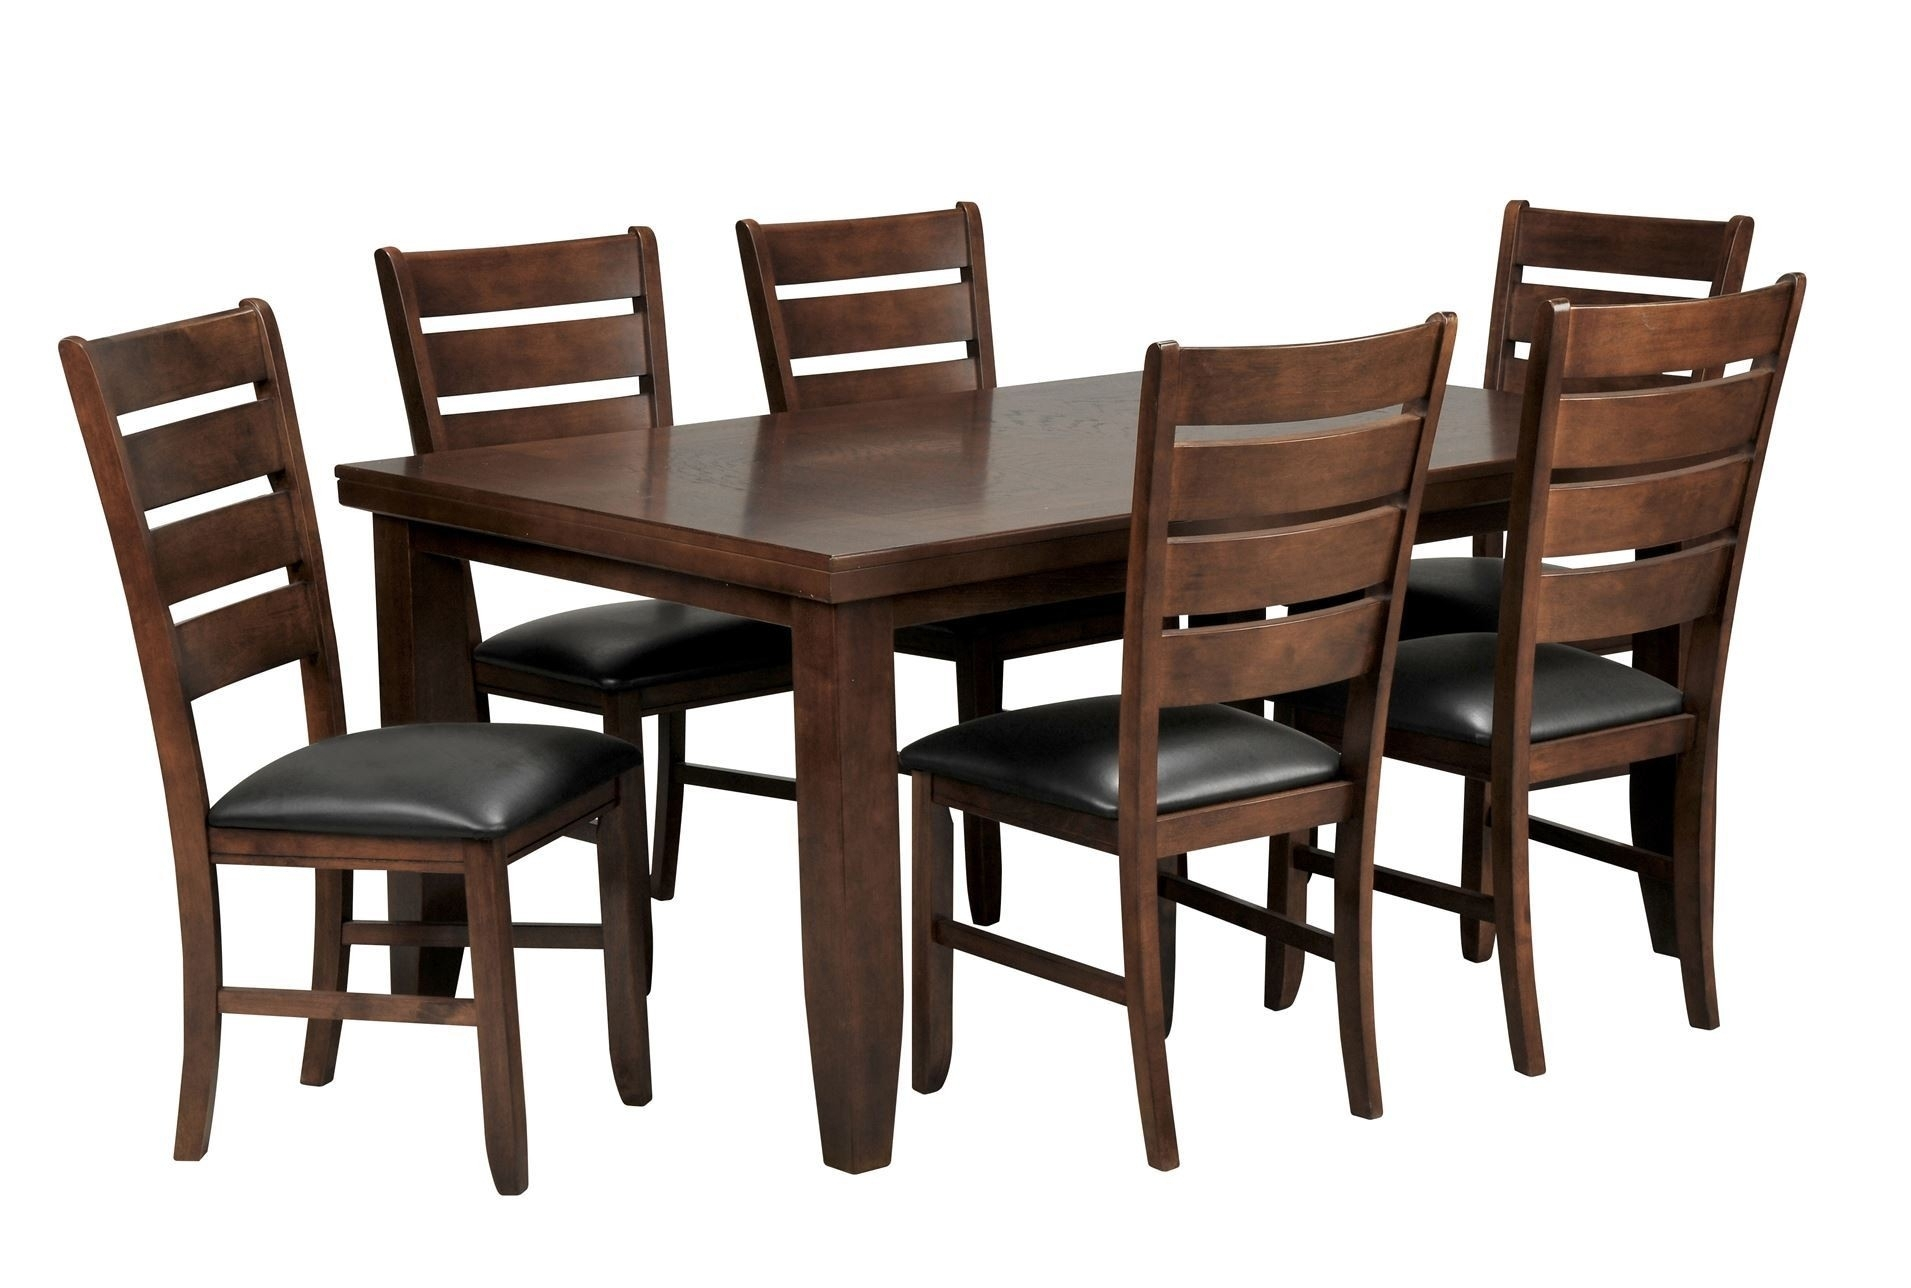 Bradford 7 Piece Dining Set W/ 6 Bardstown Side Chairs – Dining With Regard To Best And Newest Bradford 7 Piece Dining Sets With Bardstown Side Chairs (Image 4 of 20)